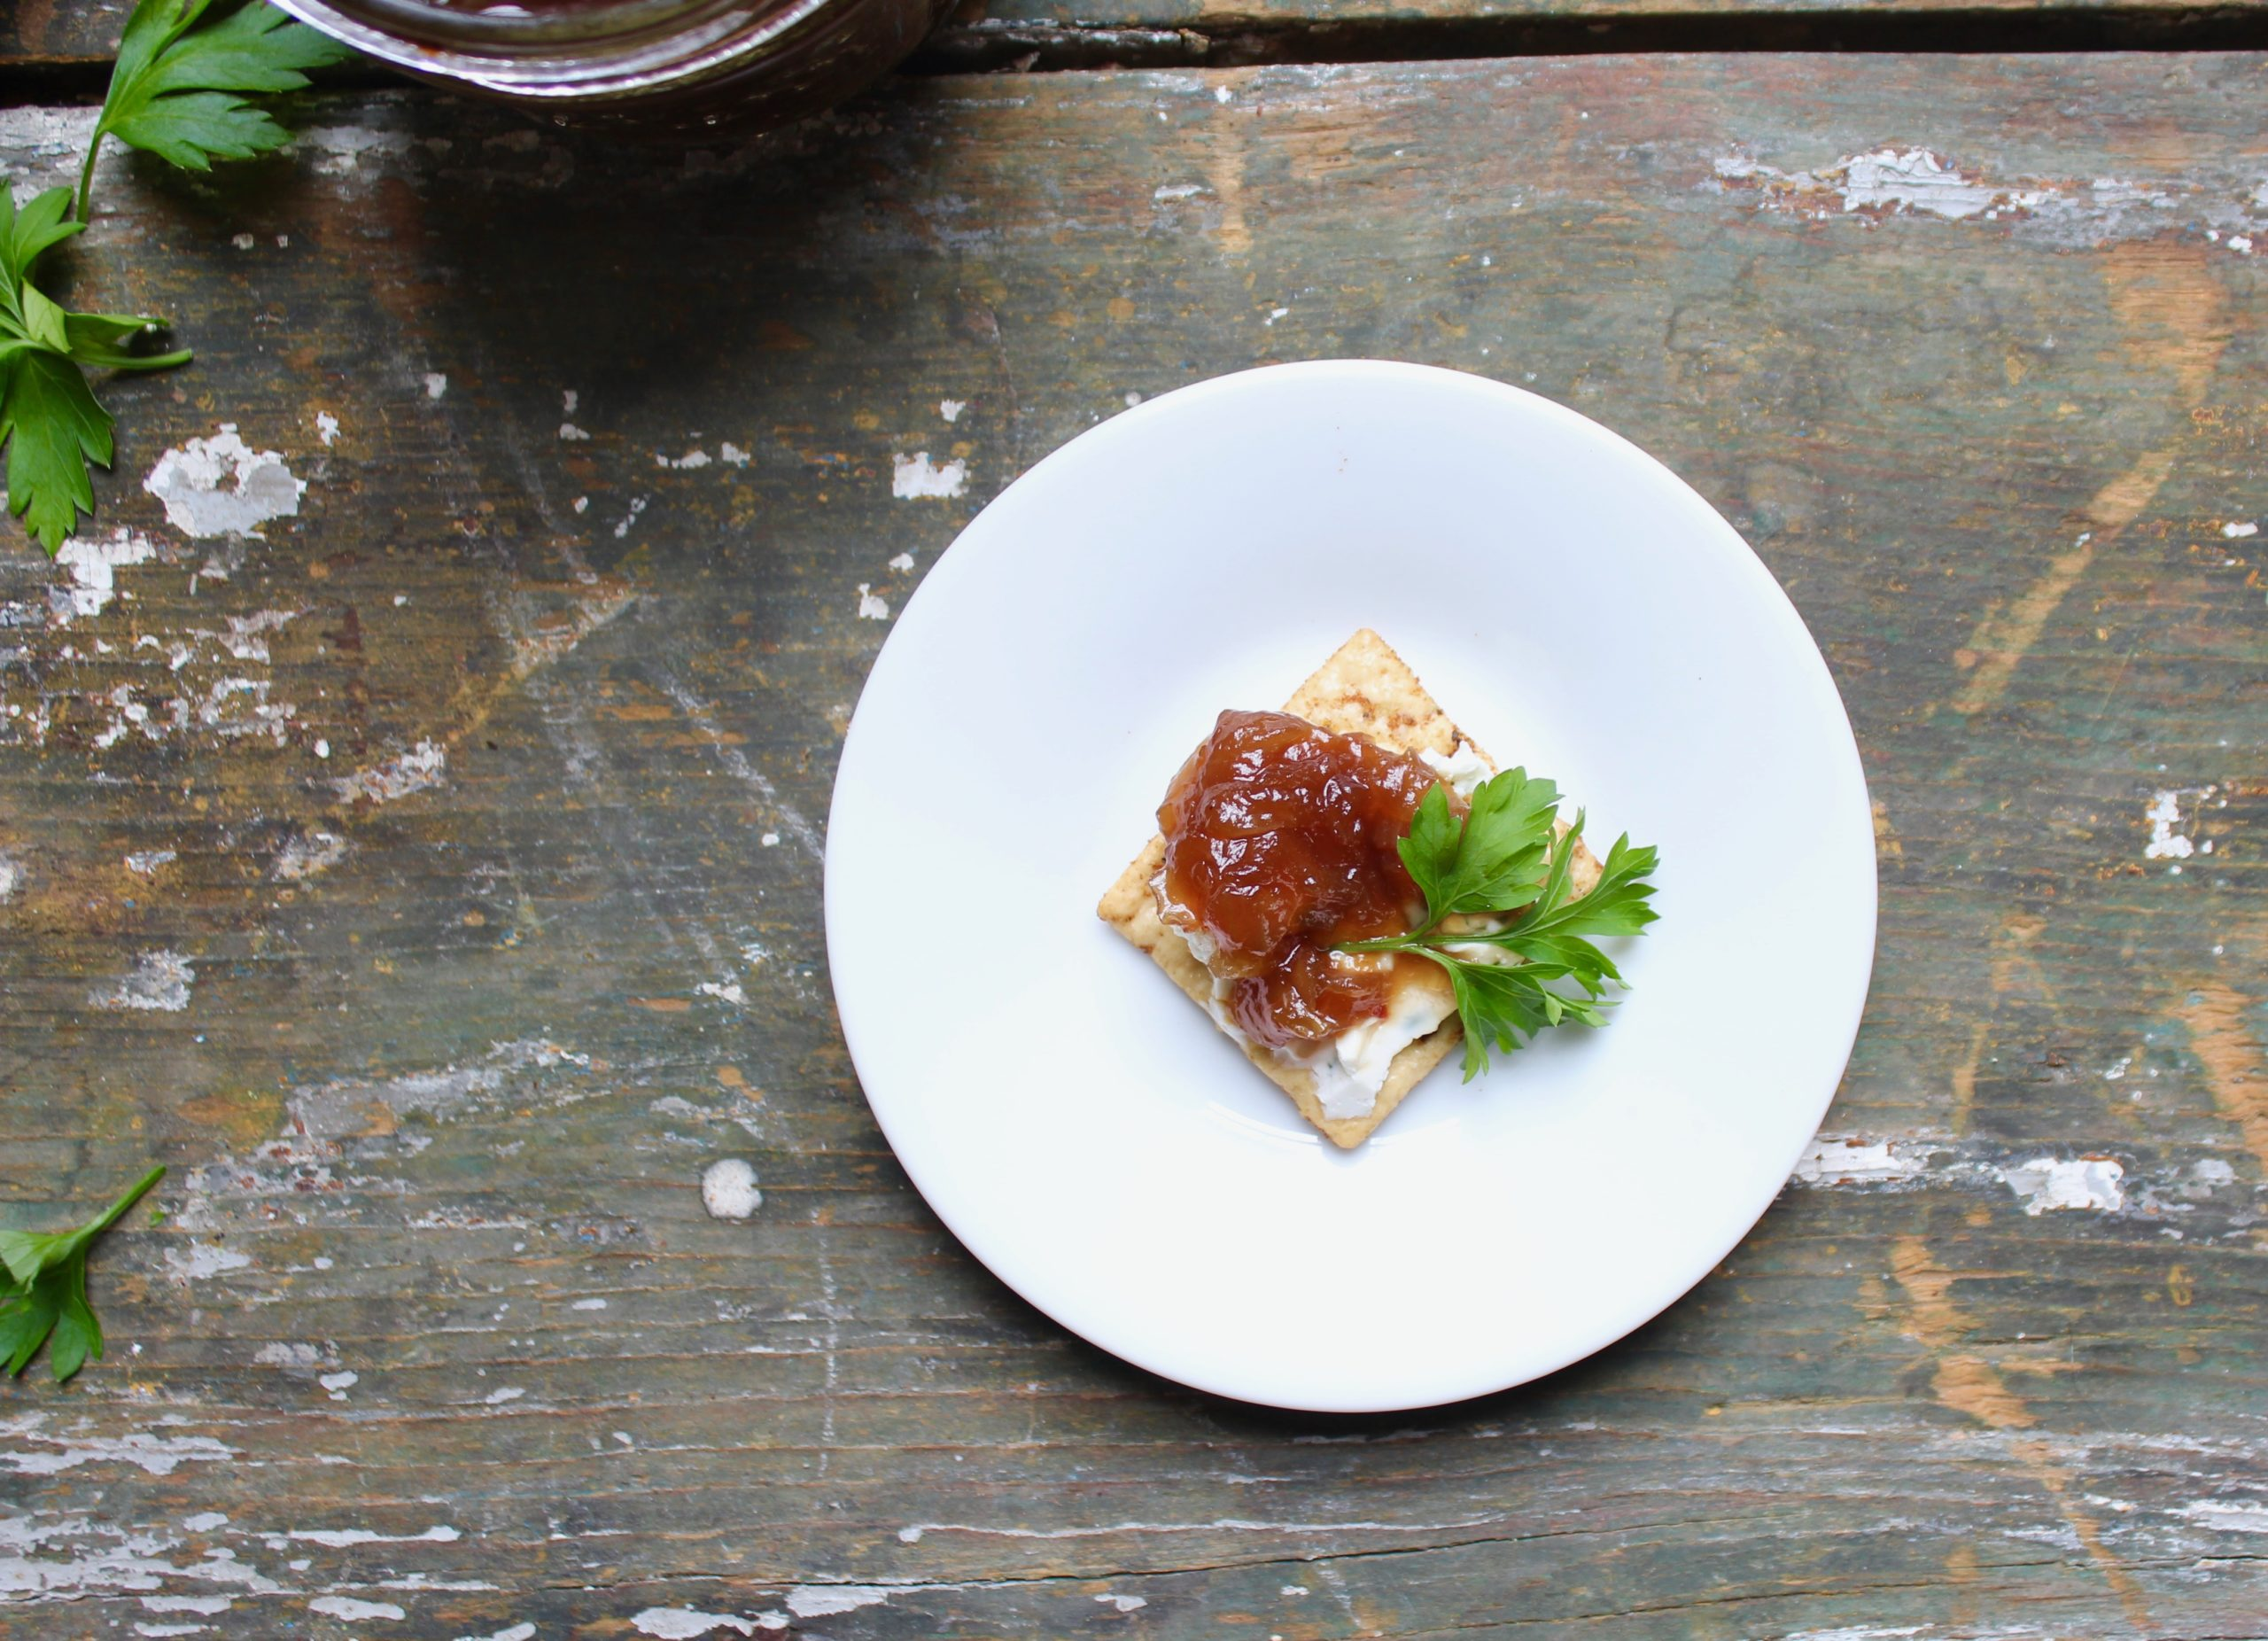 vidalia onion chutney on cracker